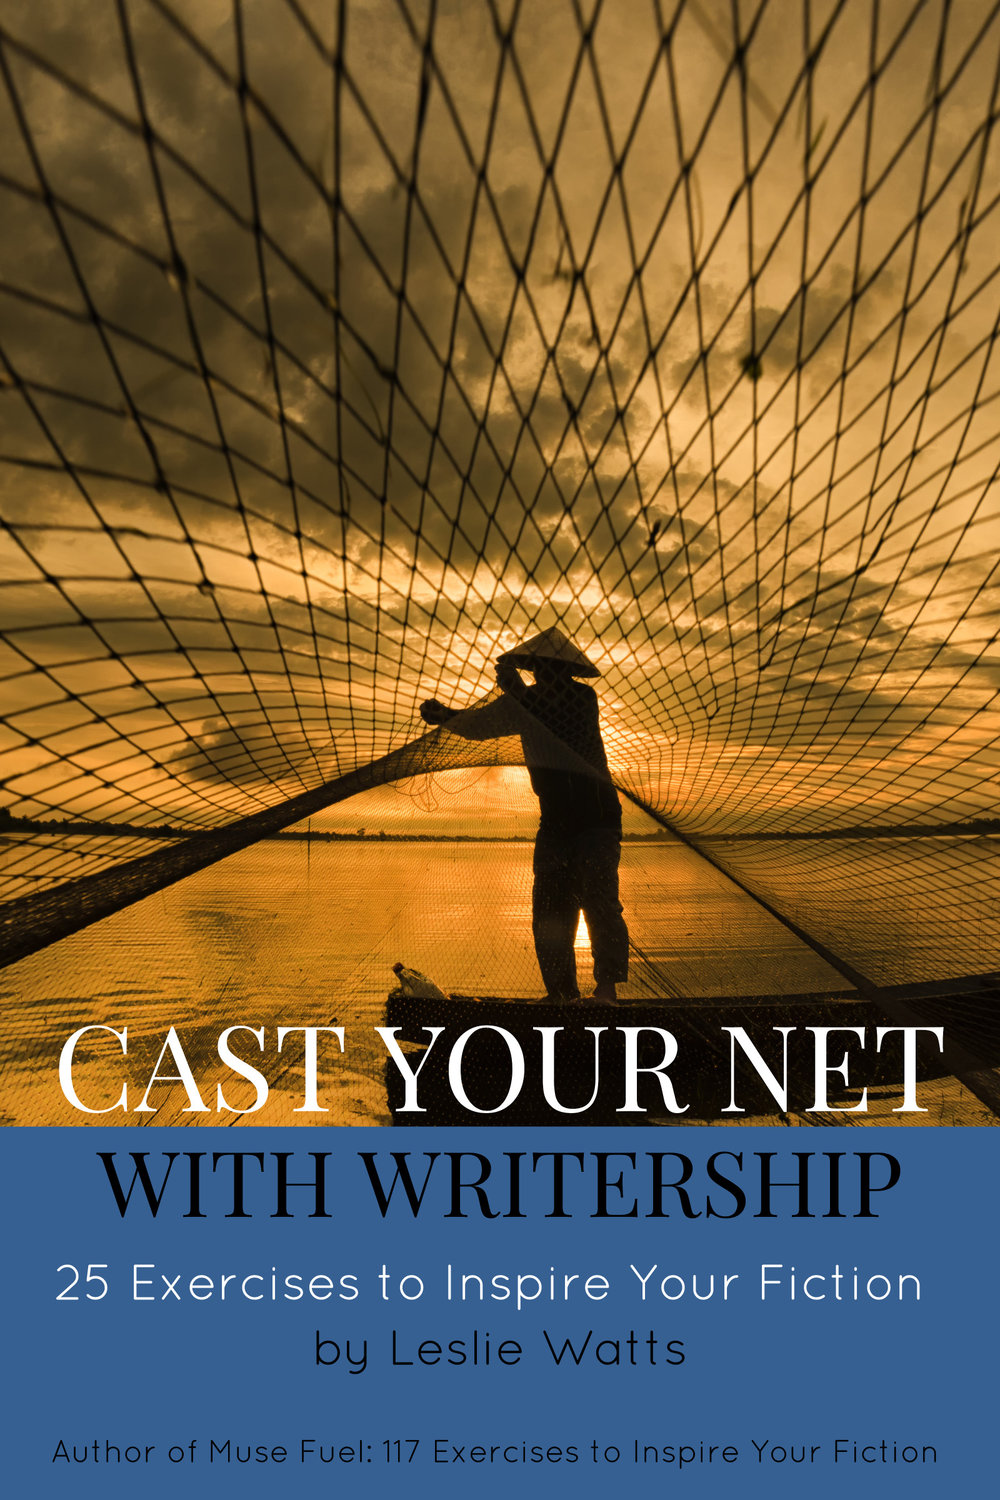 Cast Your Net with Writership, 25 Exercises to Inspire Your Fiction  by Leslie Watts